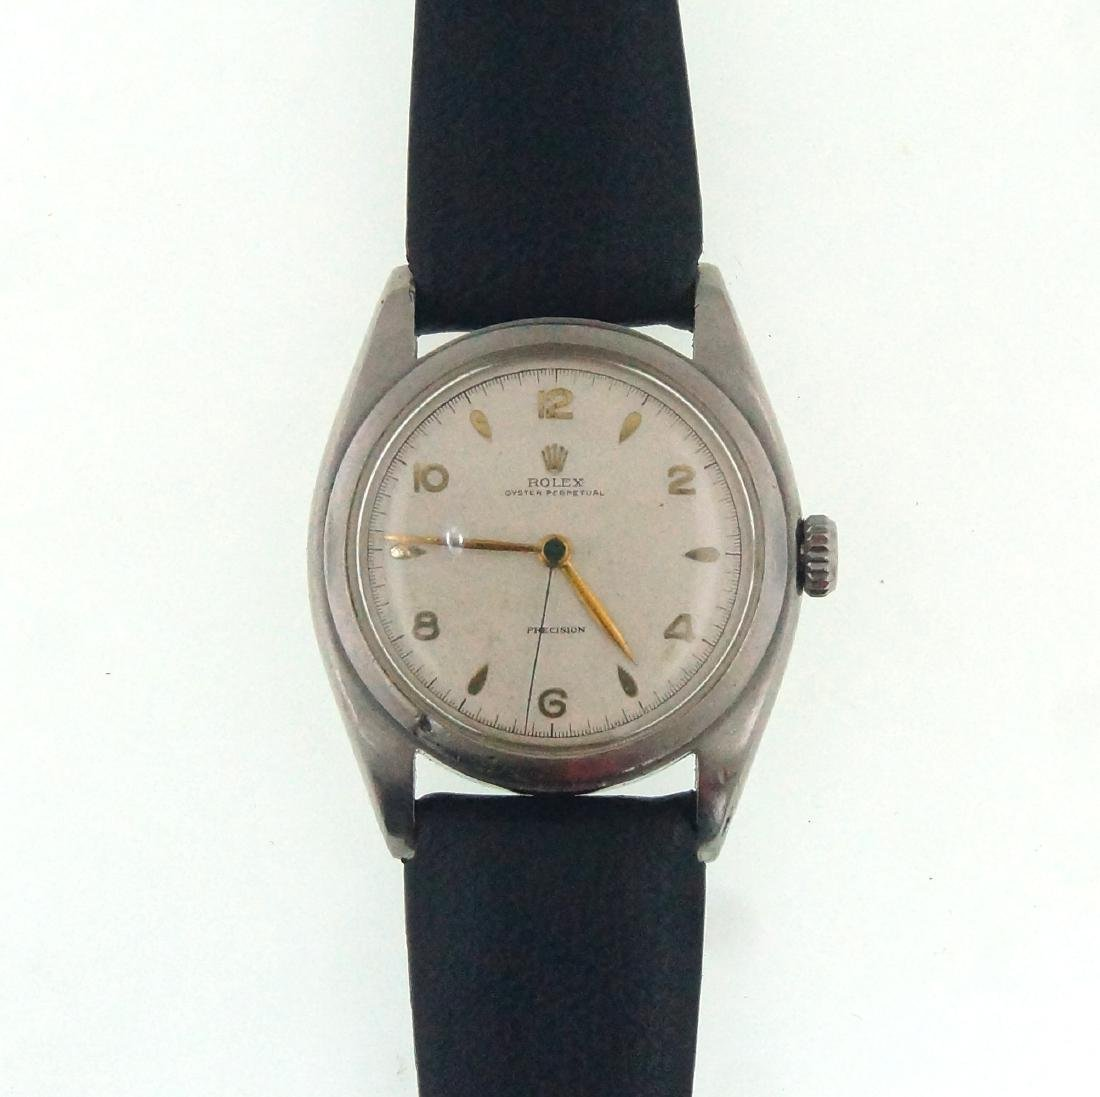 Rolex Bubbleback Oyster perpetual chronometer